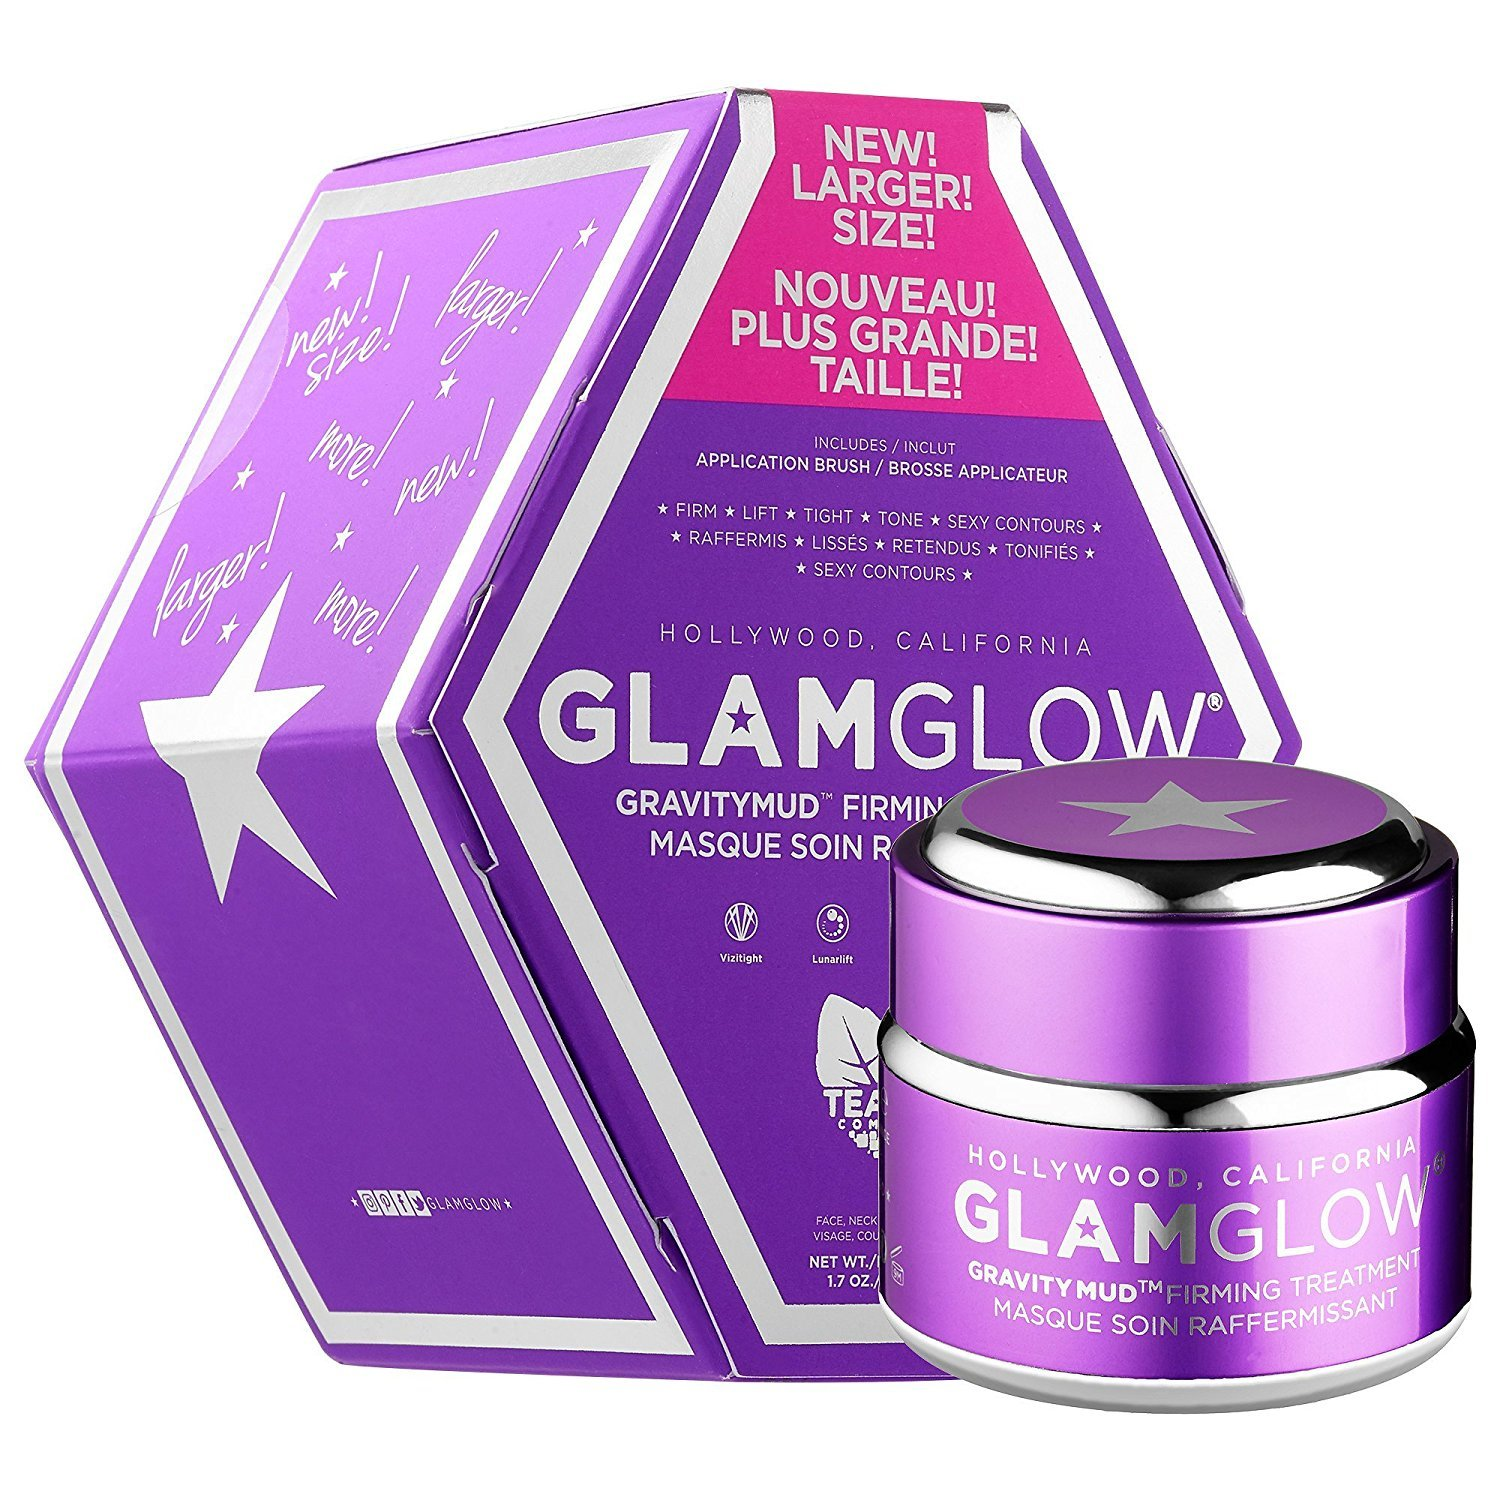 picture This Jumbo-Sized Gravitymud Mask from Glamglow Is 20 Percent Off at Nordstrom Right Now